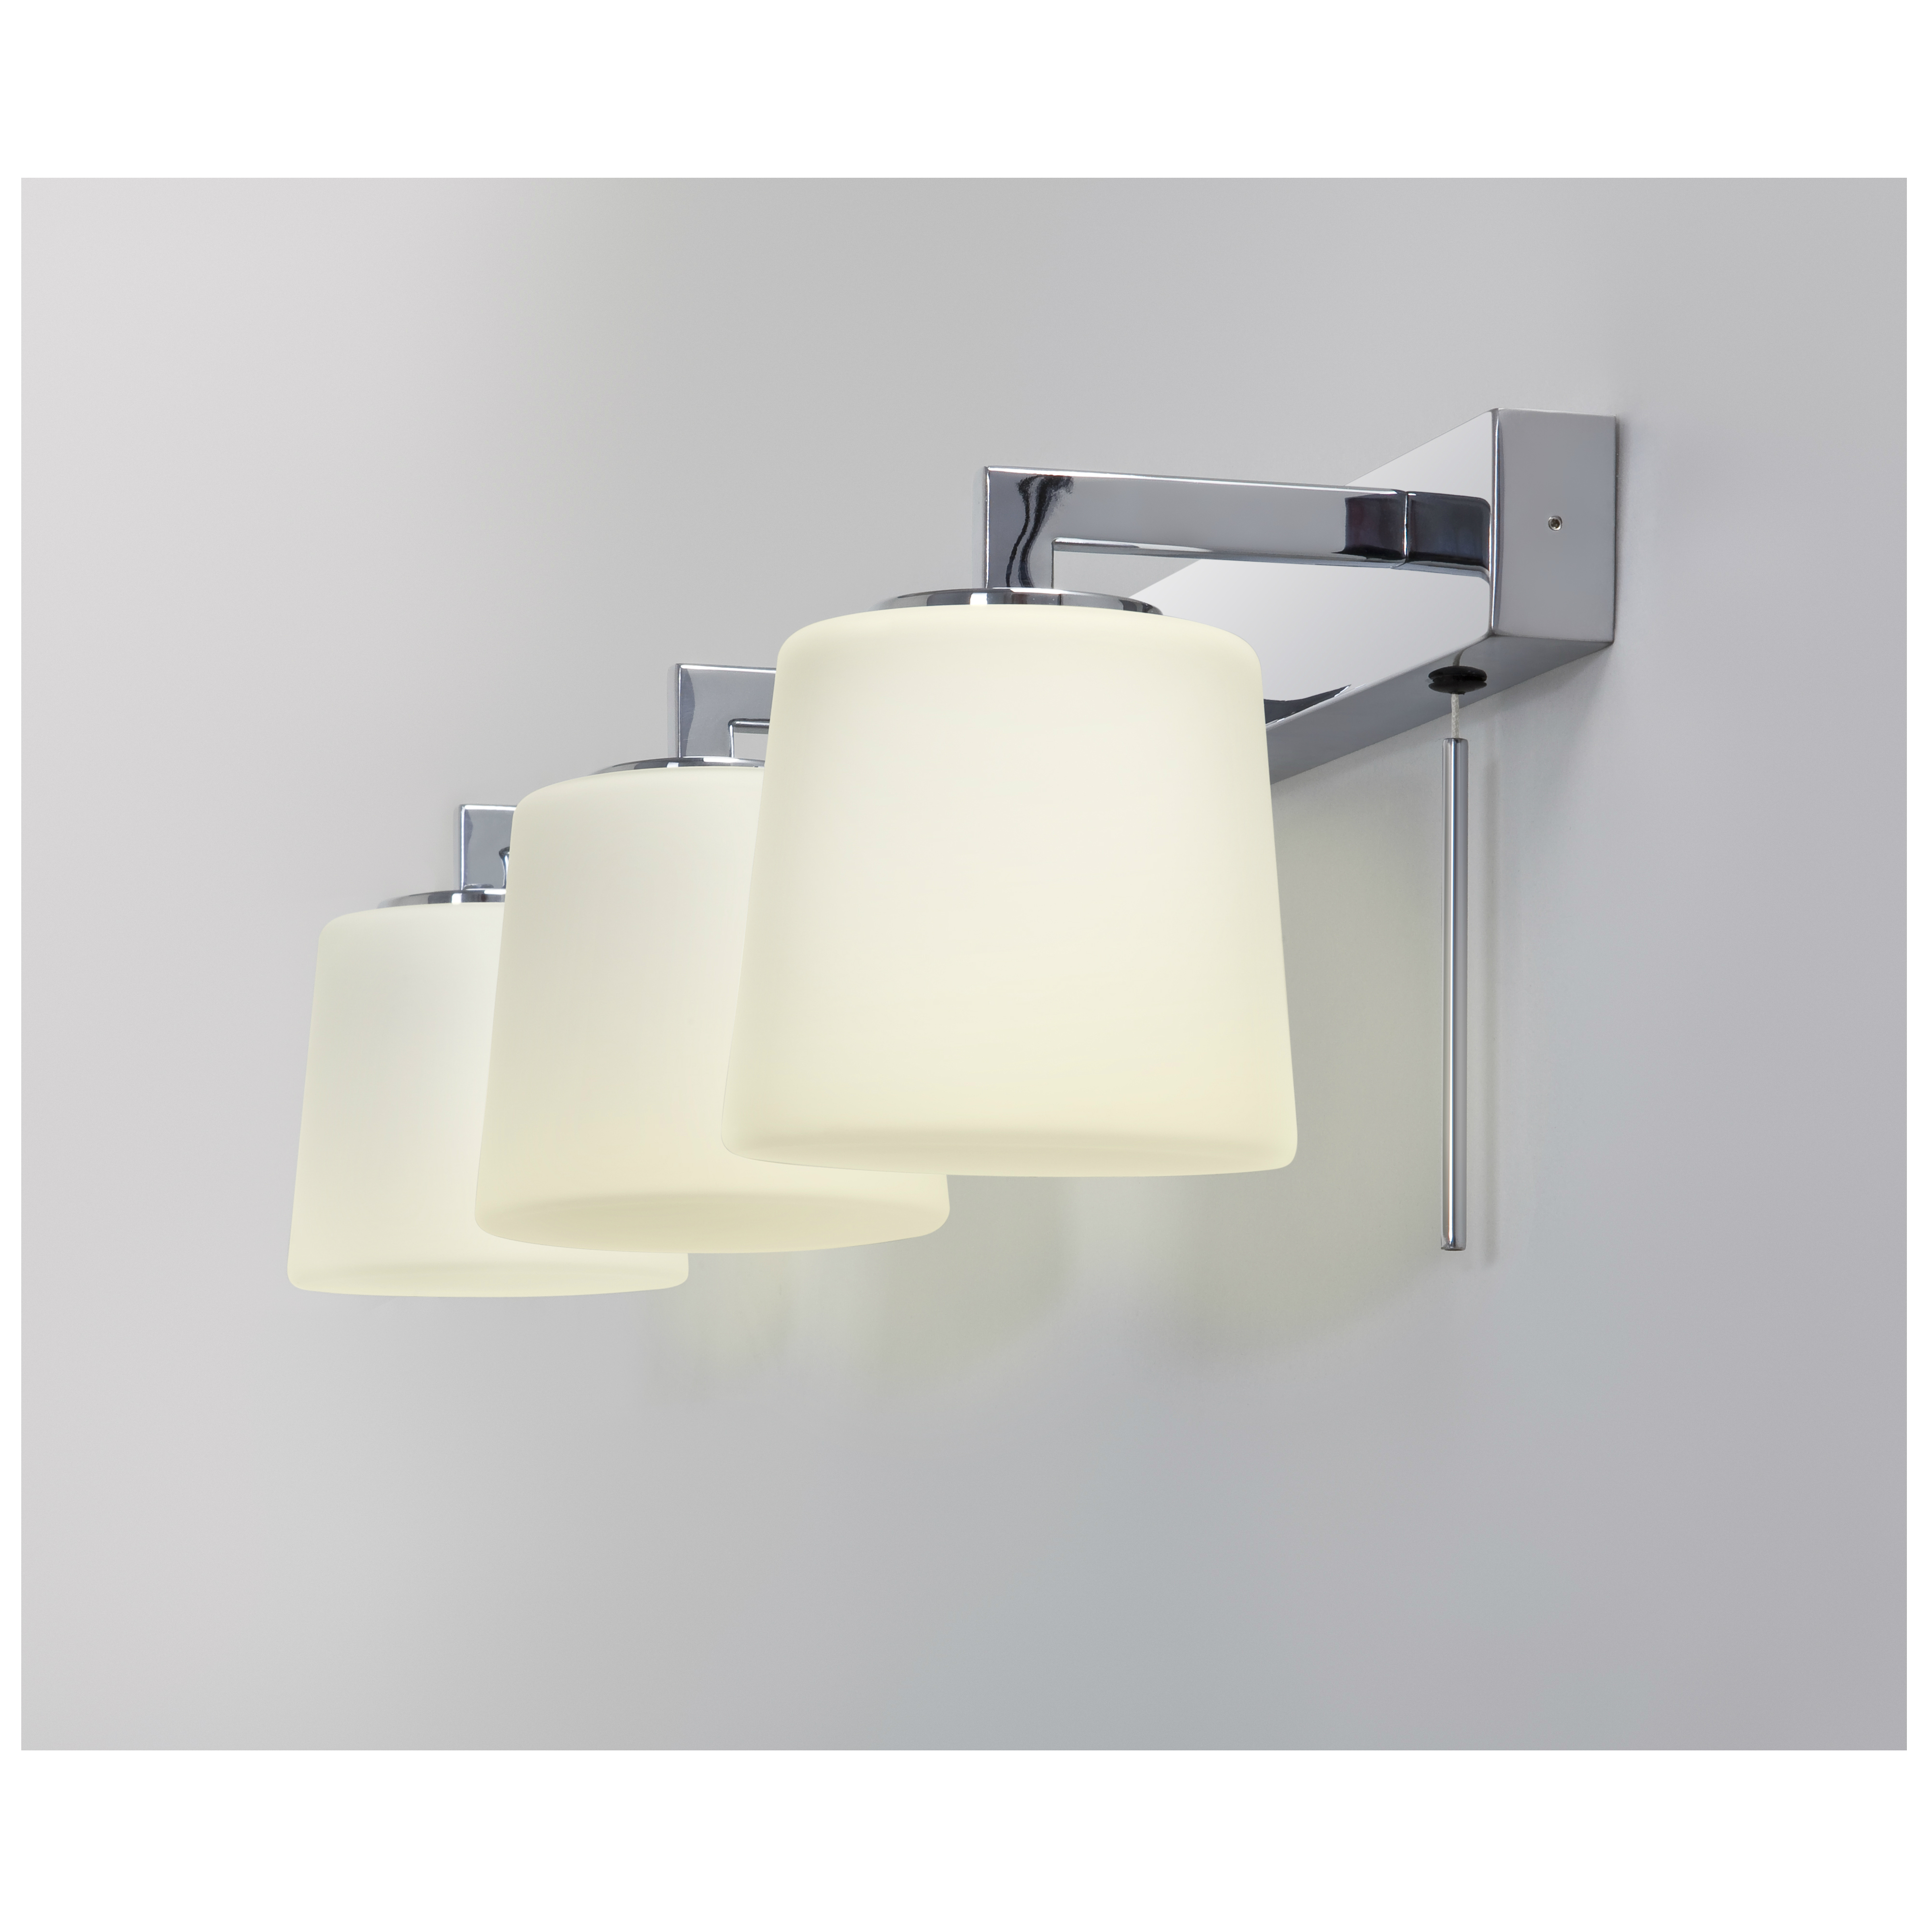 Bathroom wall lights product categories light innovation triplex aloadofball Images